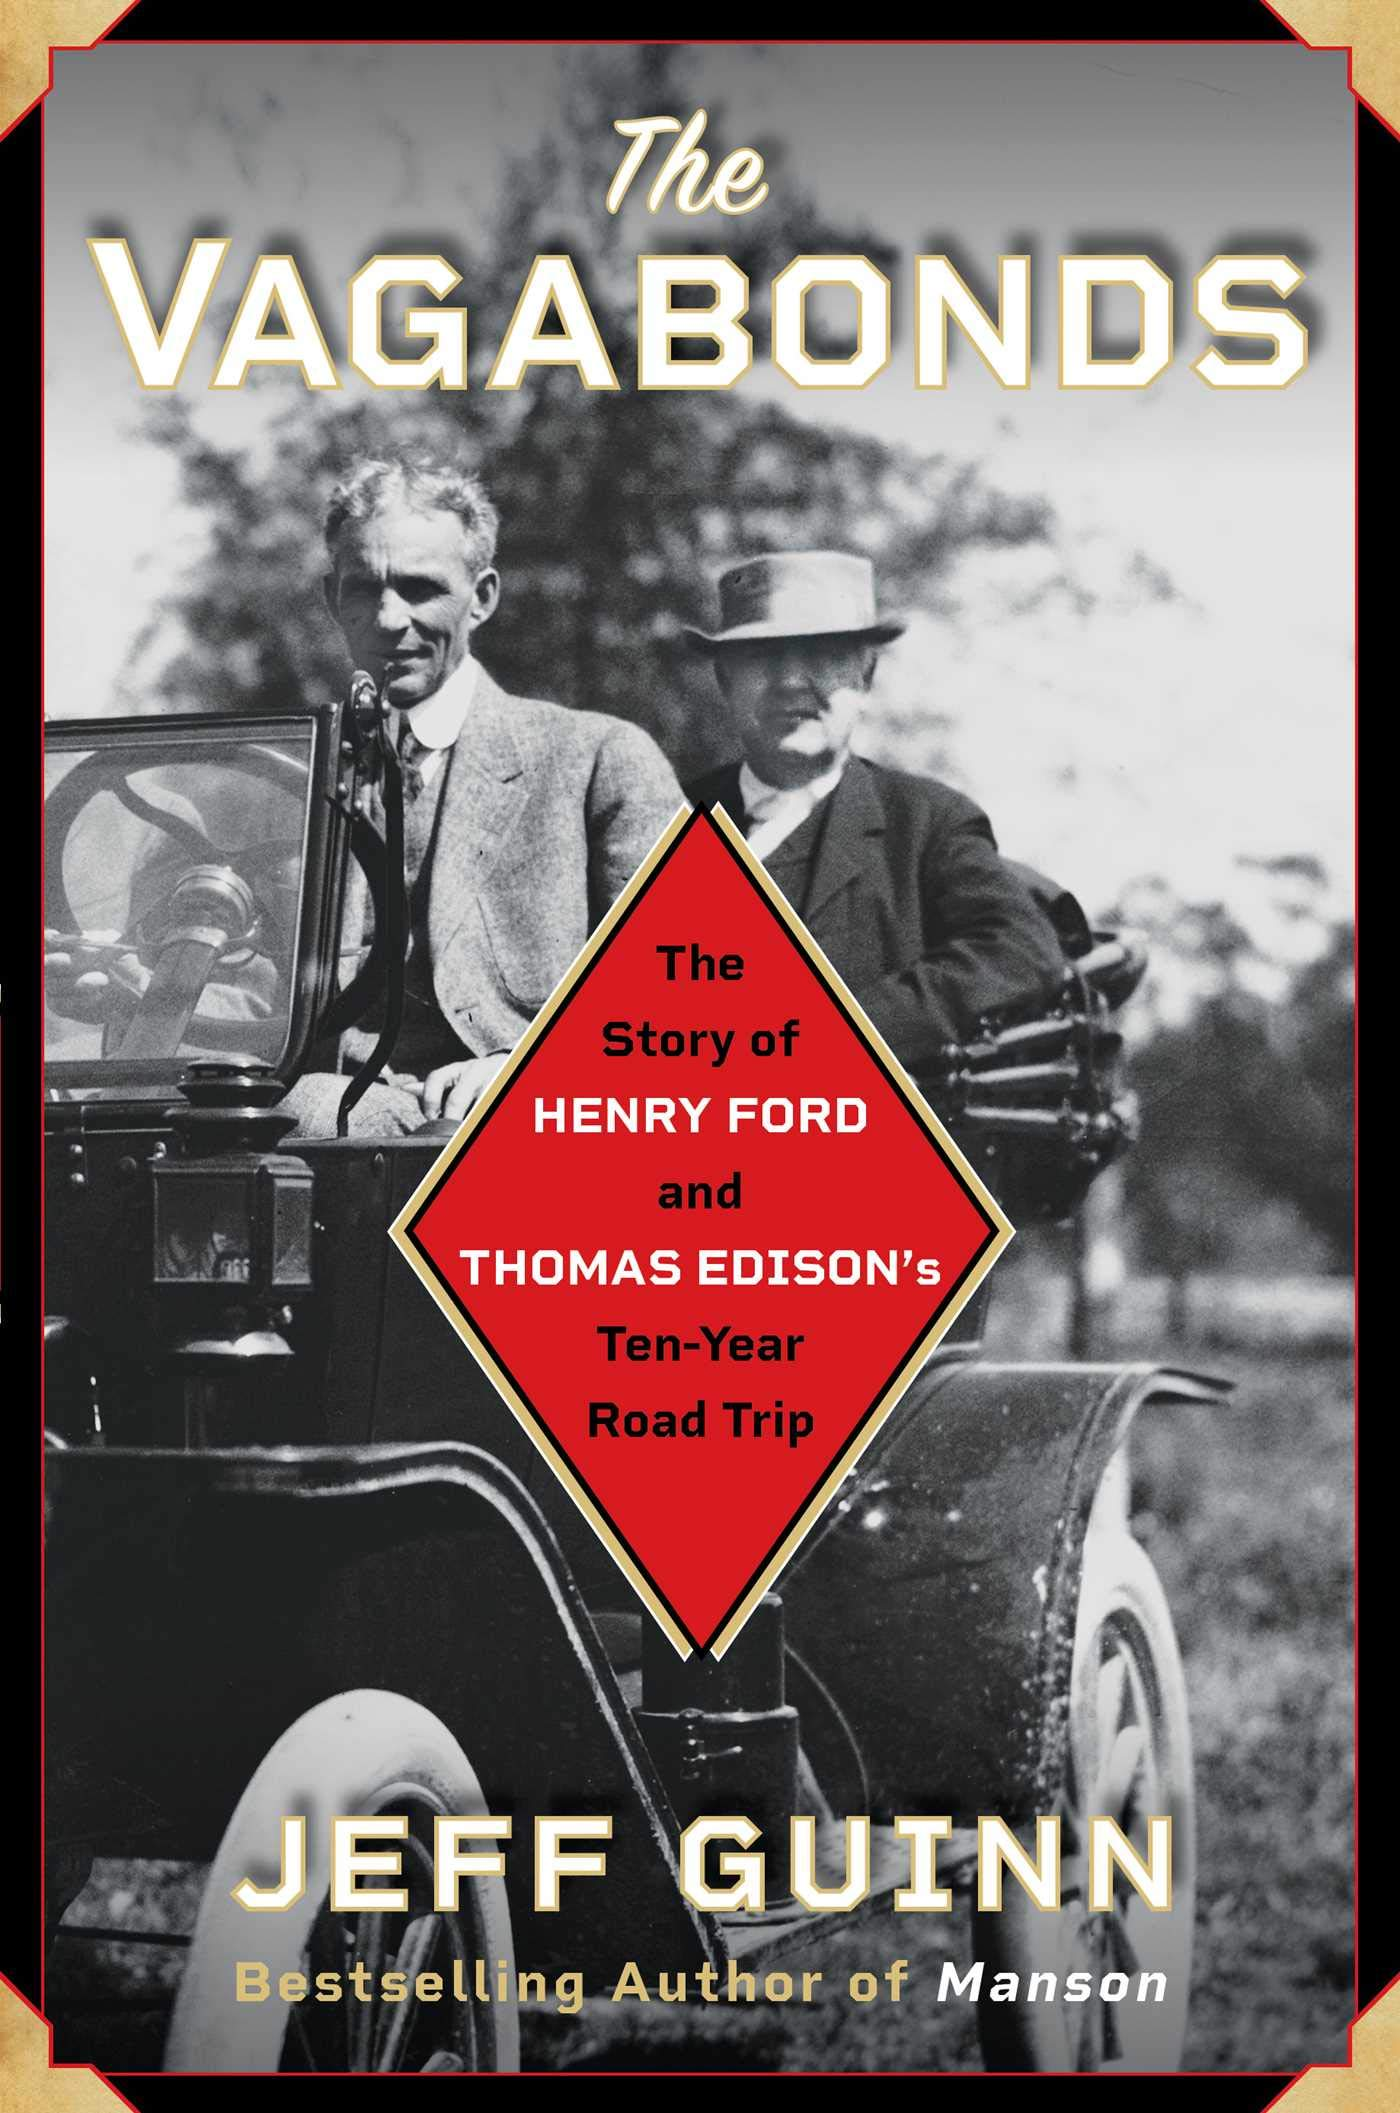 Promotional image for Martin Bandyke Under Covers for February 2020: Martin interviews Jeff Guinn, author of The Vagabonds: The Story of Henry Ford and Thomas Edison's Ten-Year Road Trip podcast